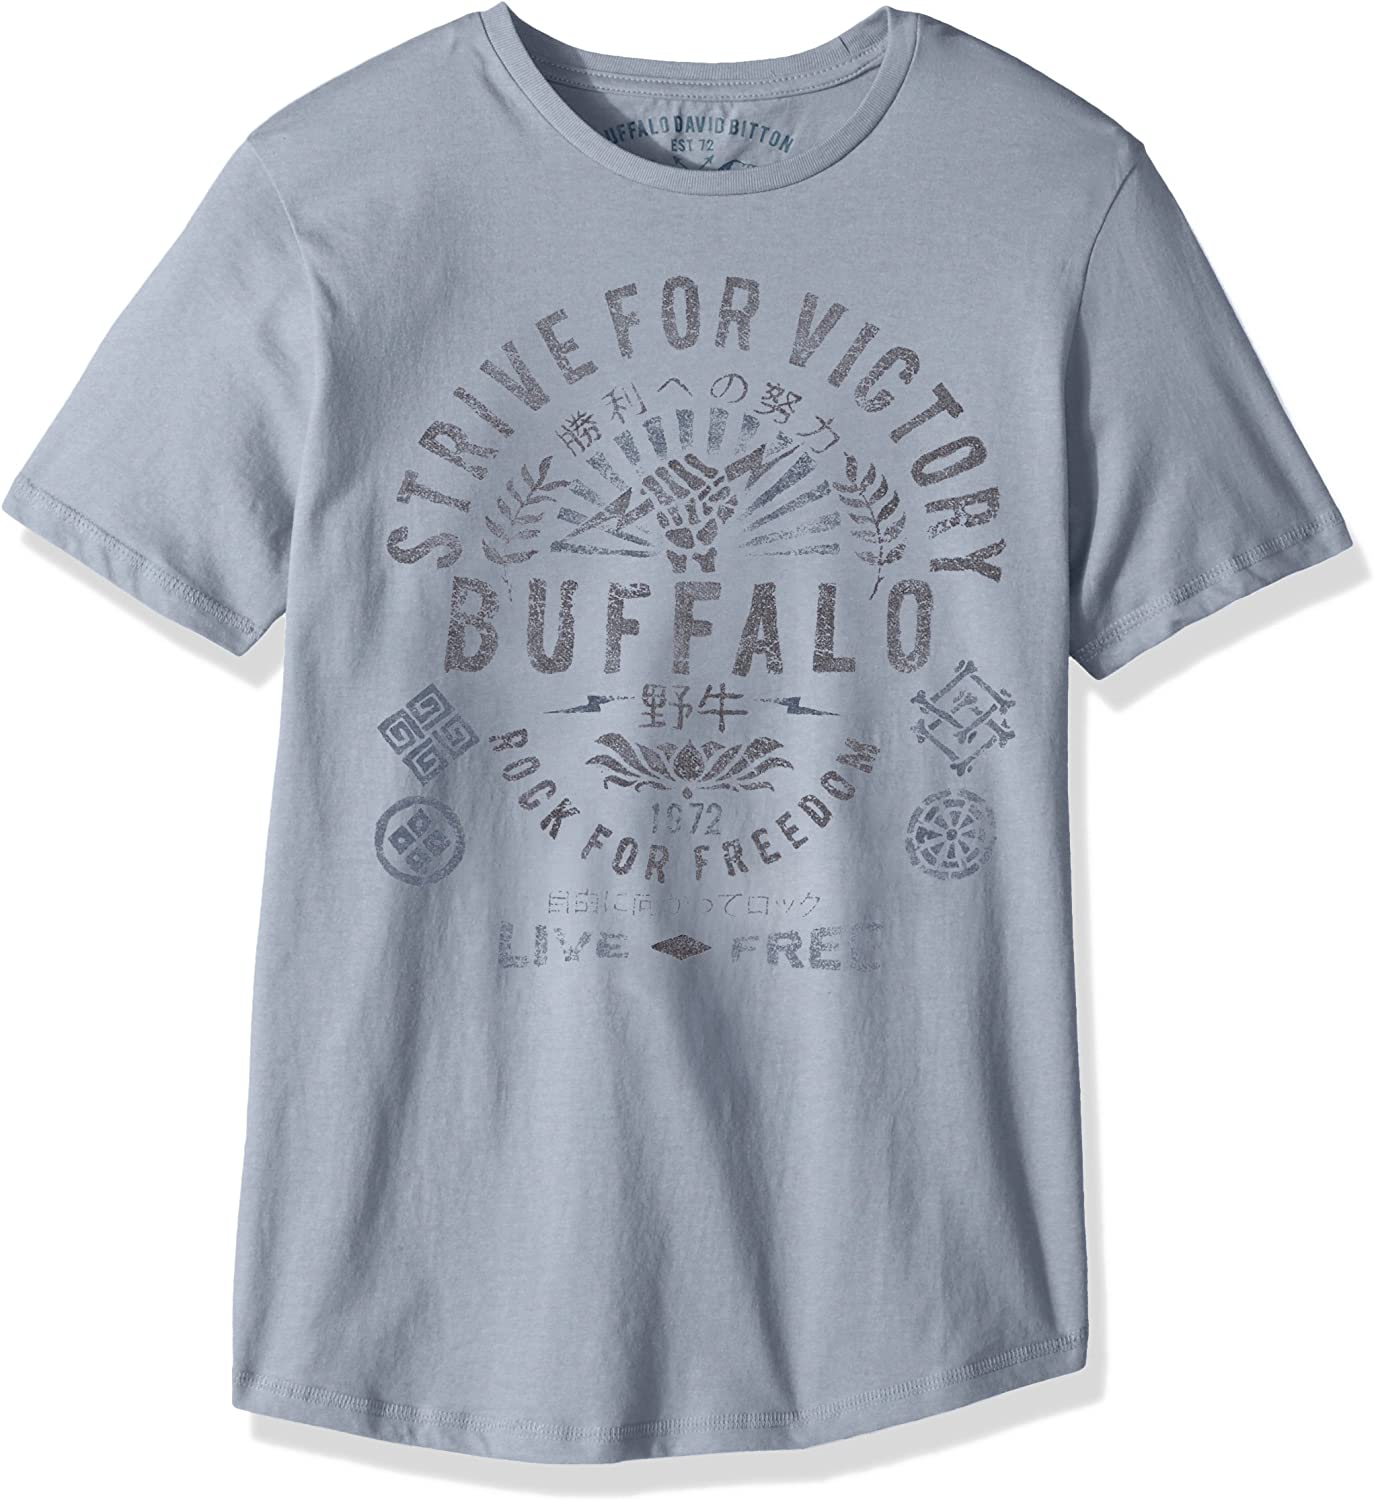 Buffalo David Bitton Boys Big Short Sleeve Graphic Tee Shirt